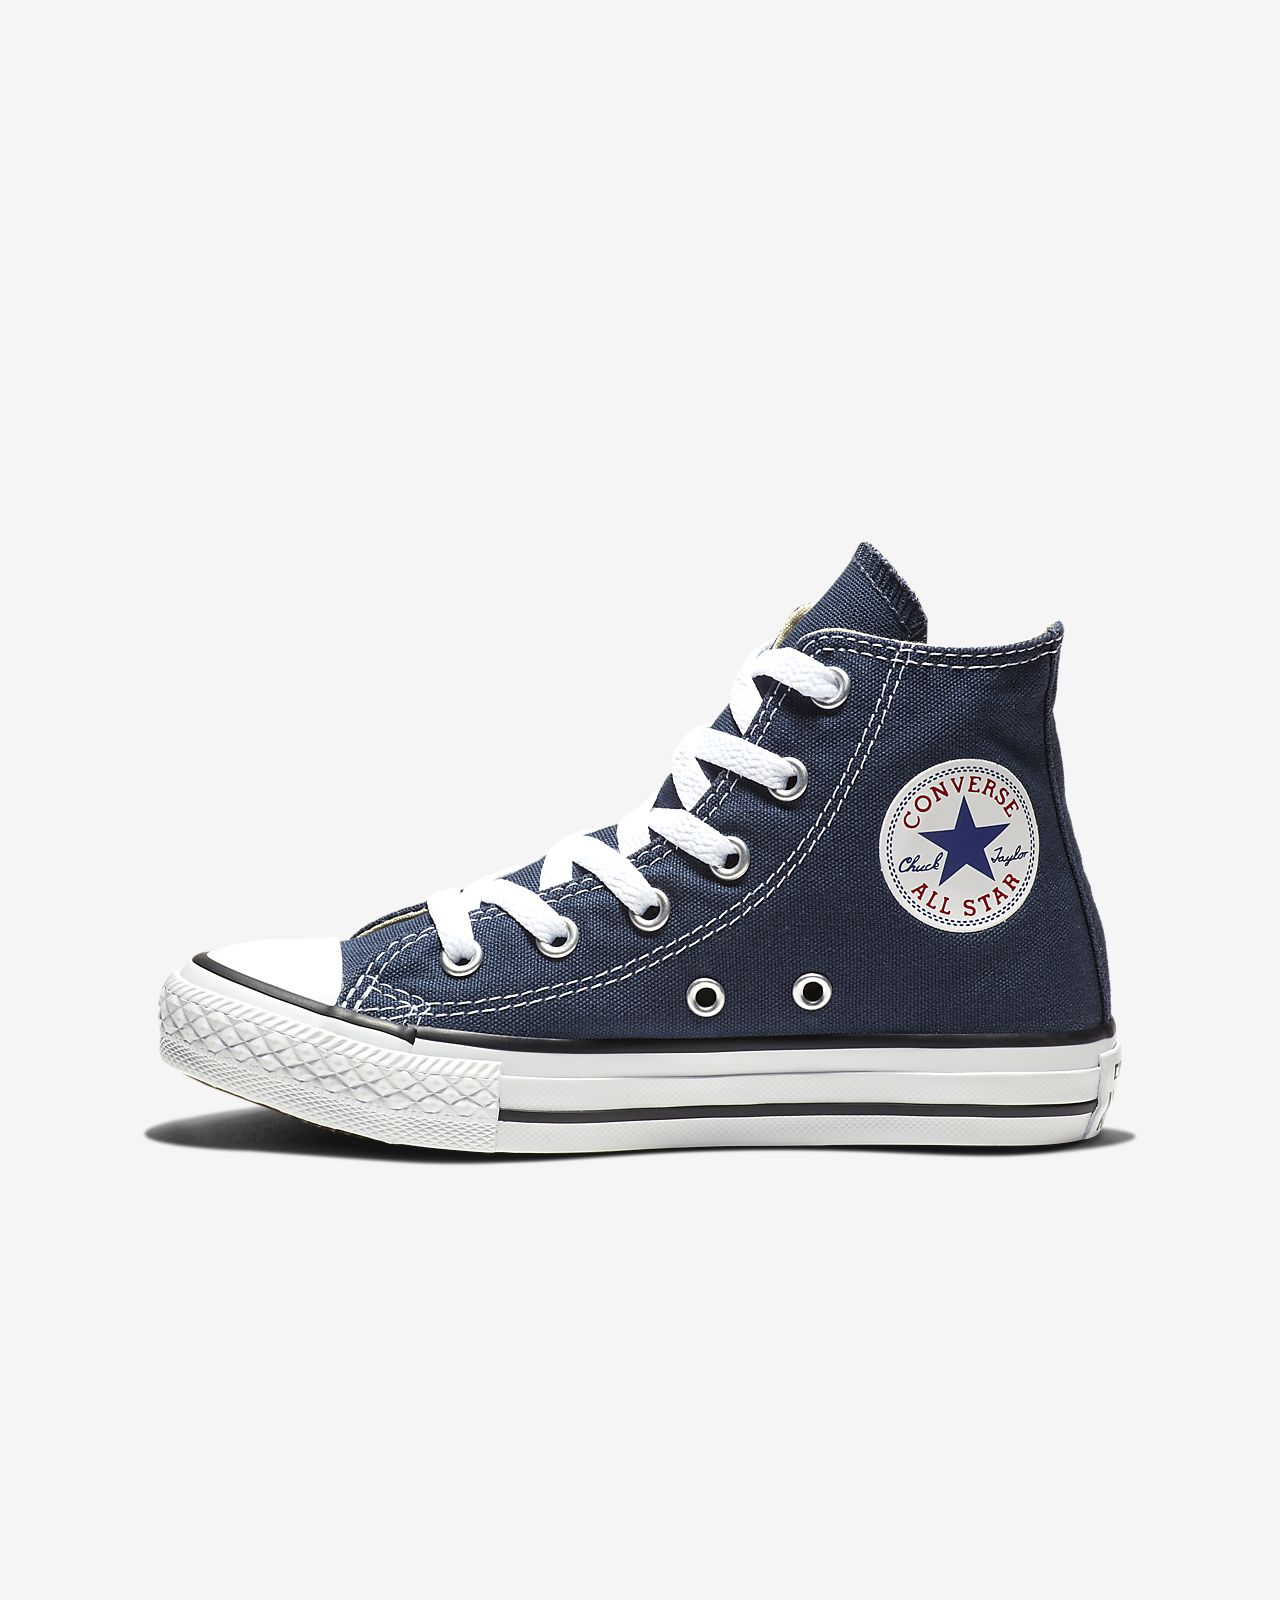 6ab811e2c0ce Converse Chuck Taylor All Star High Top (10.5c-3y) Little Kids  Shoe ...